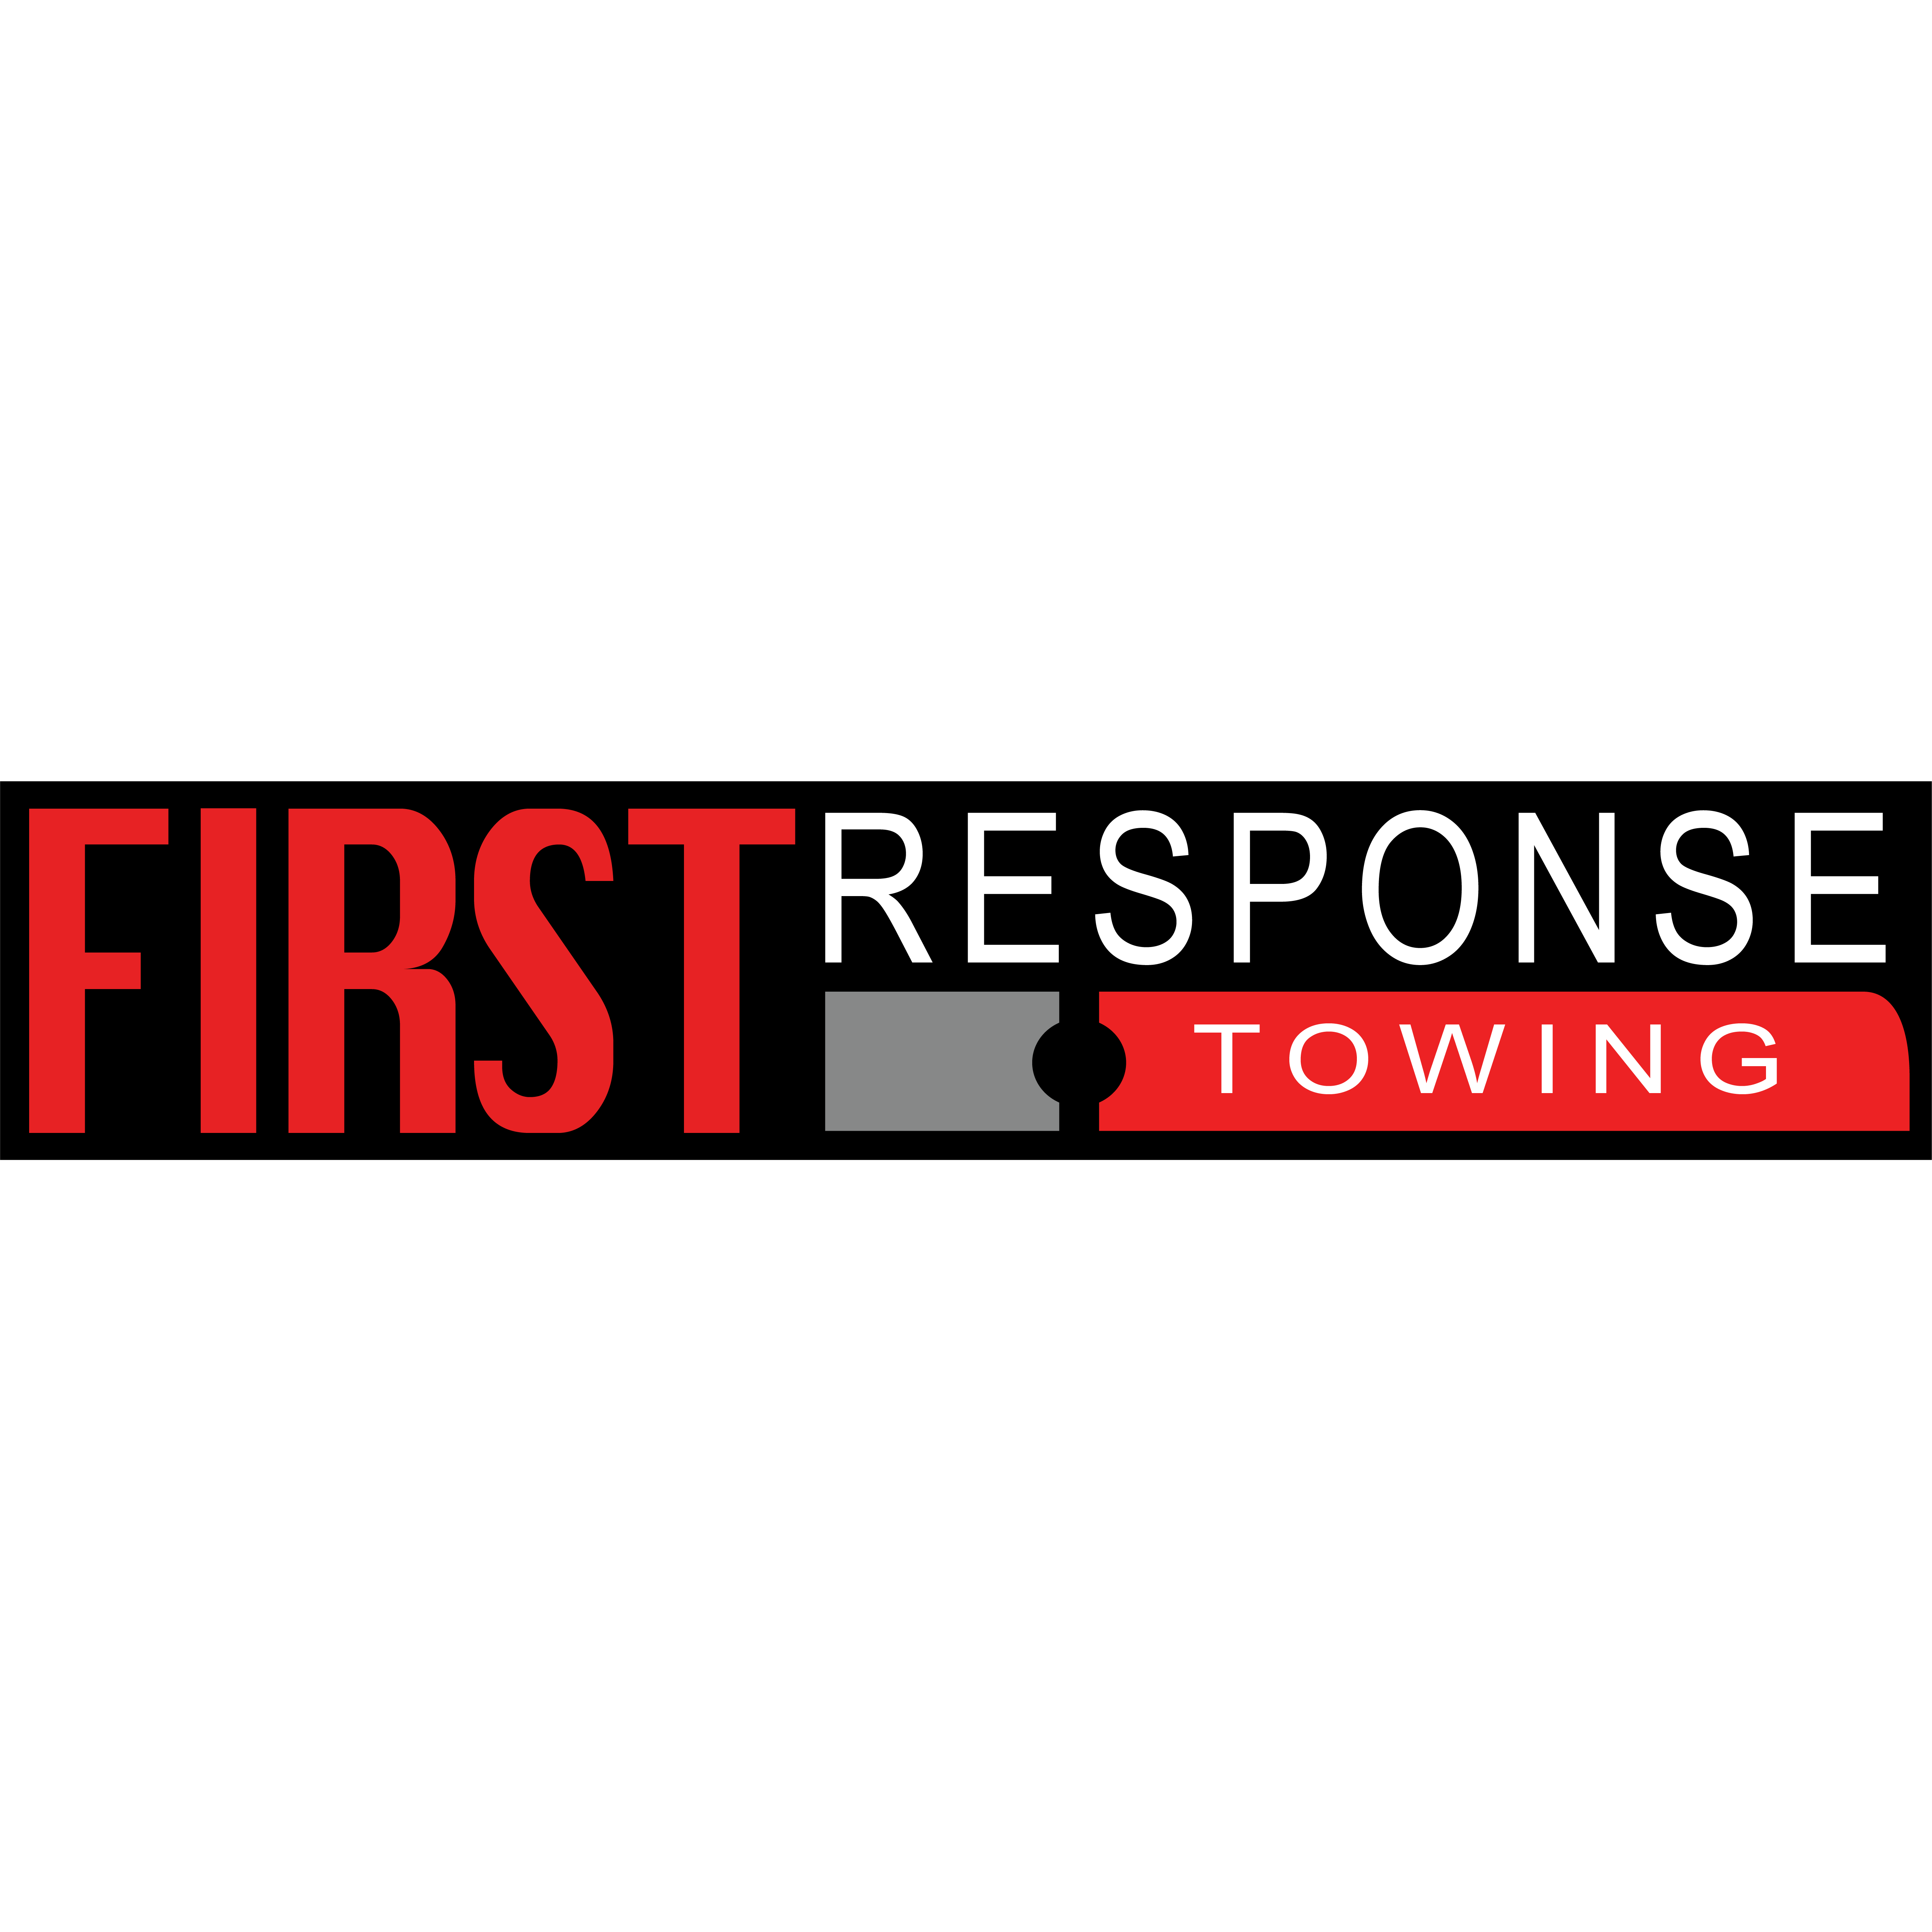 First Response Towing